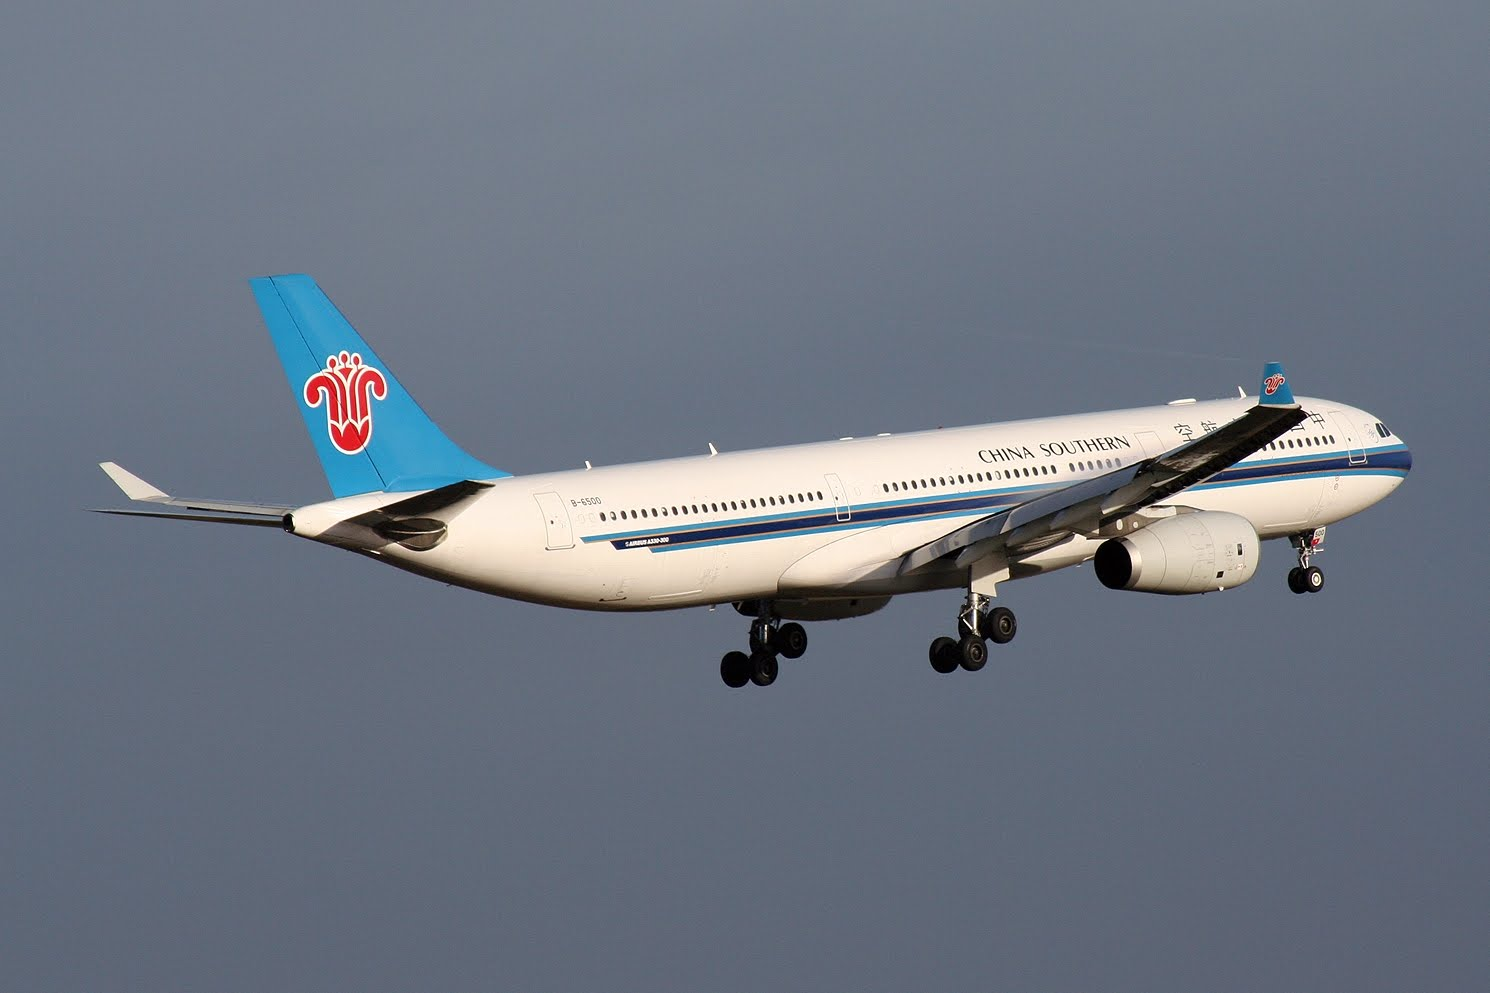 Download this China Southern Airlines Schedule Follows picture